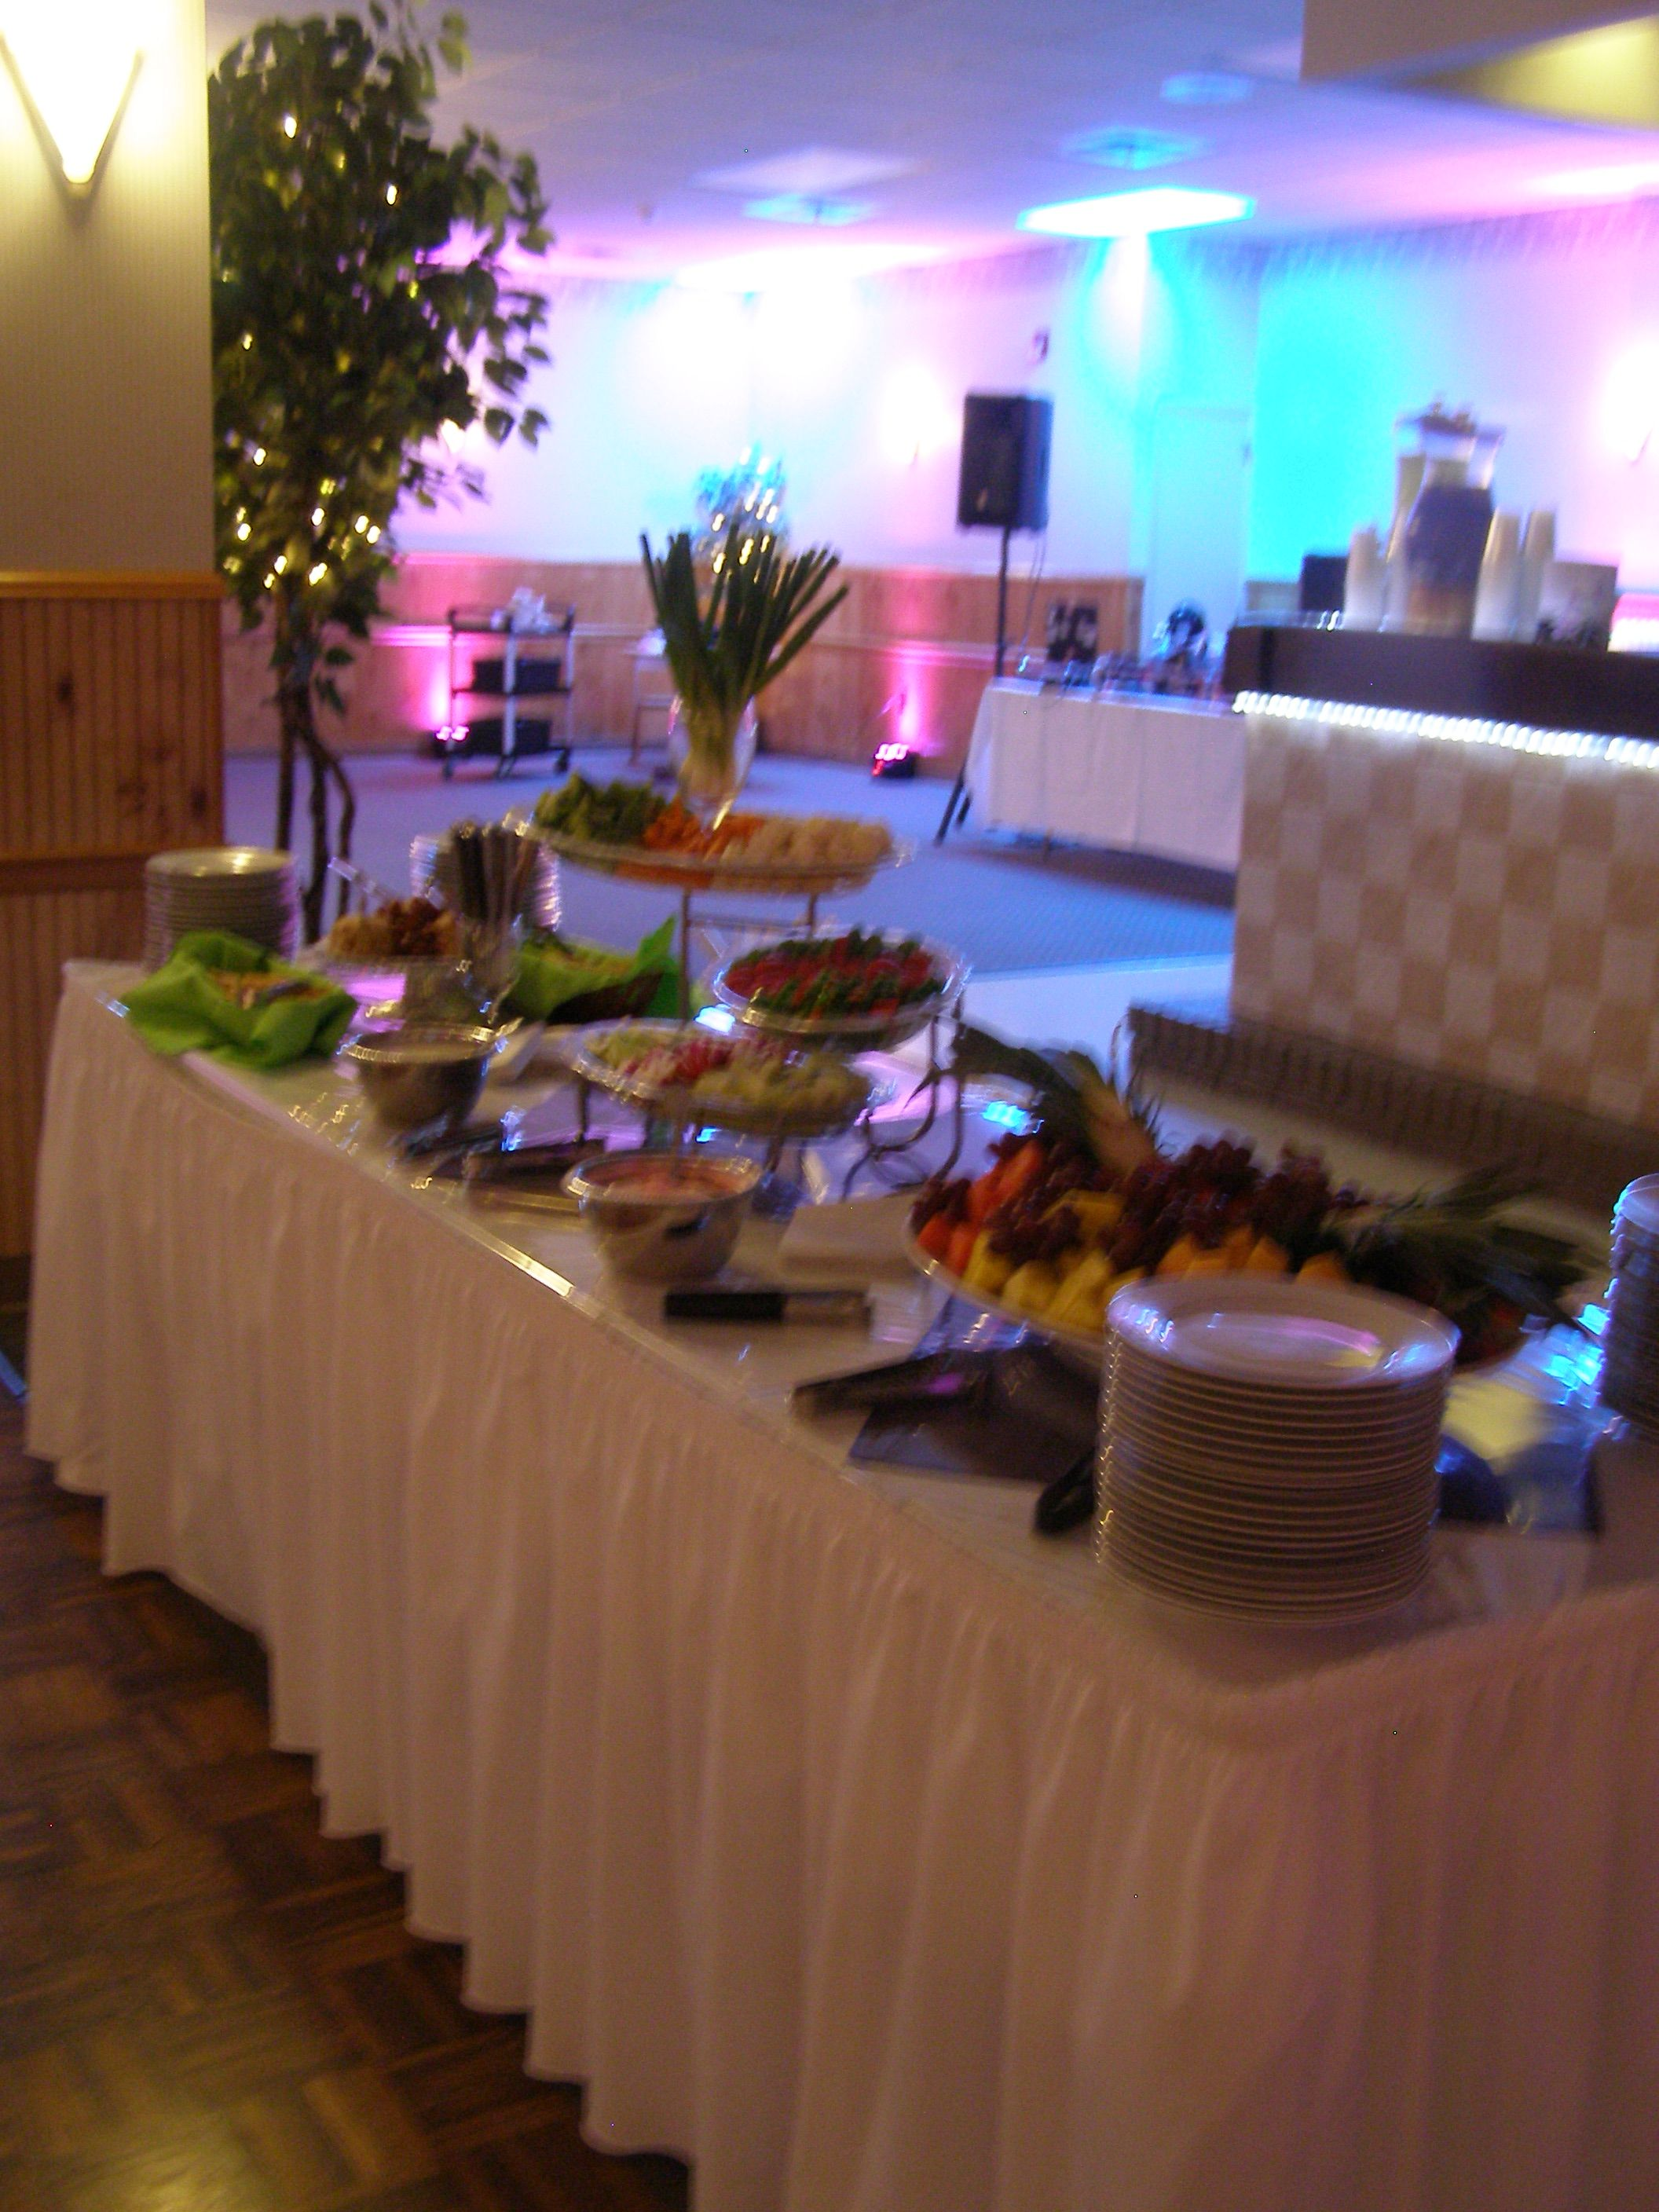 Contact Mascaros Catering In Pittsburgh PA Today To Discuss Your Needs By Calling